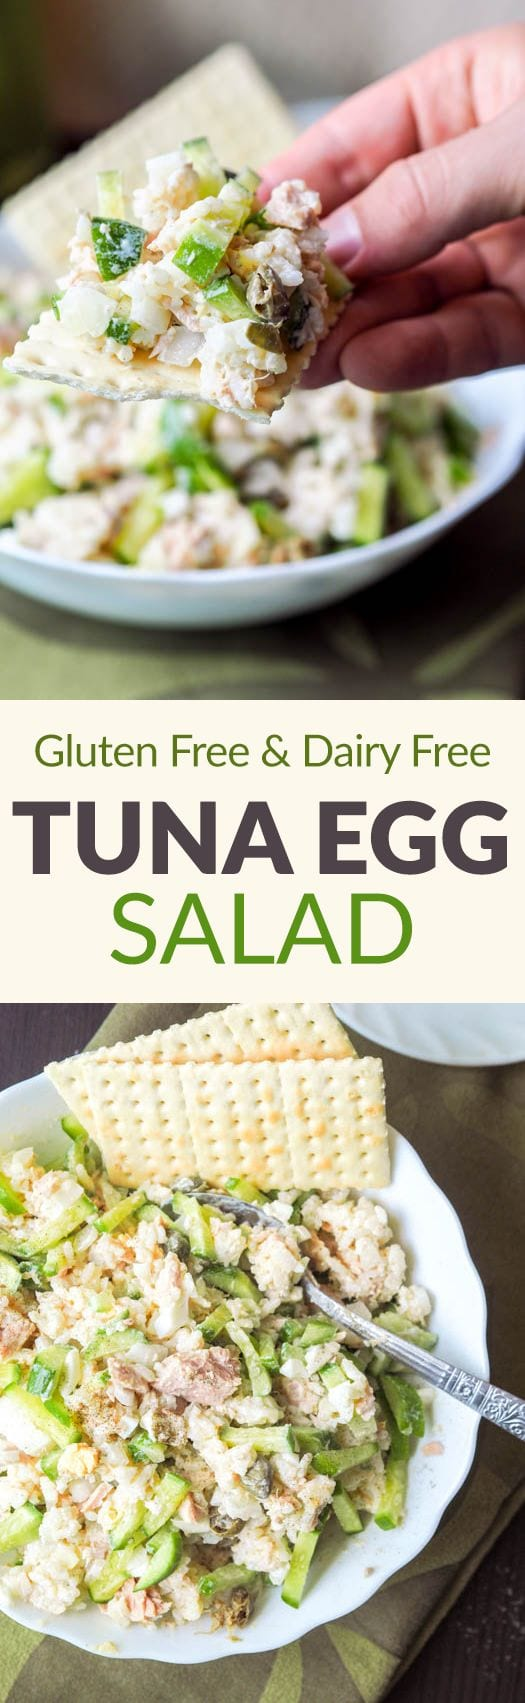 tuna egg salad pin